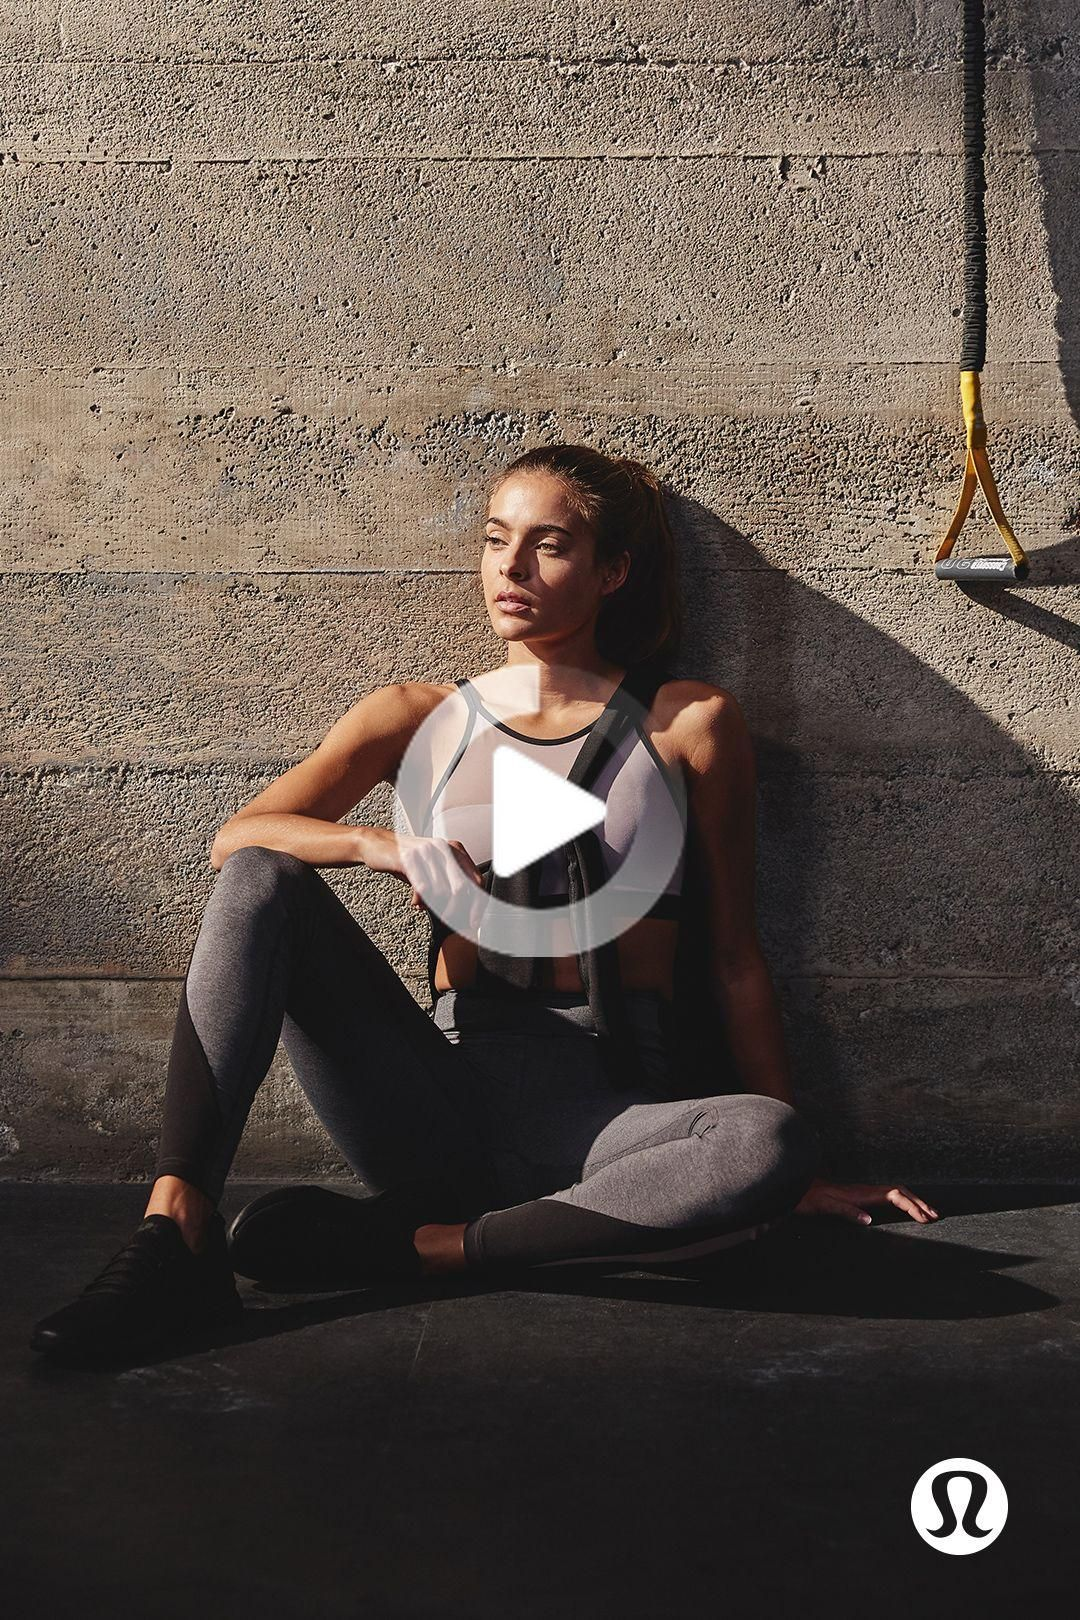 Train with confidence. | lululemon #fitness #fitnessworkout